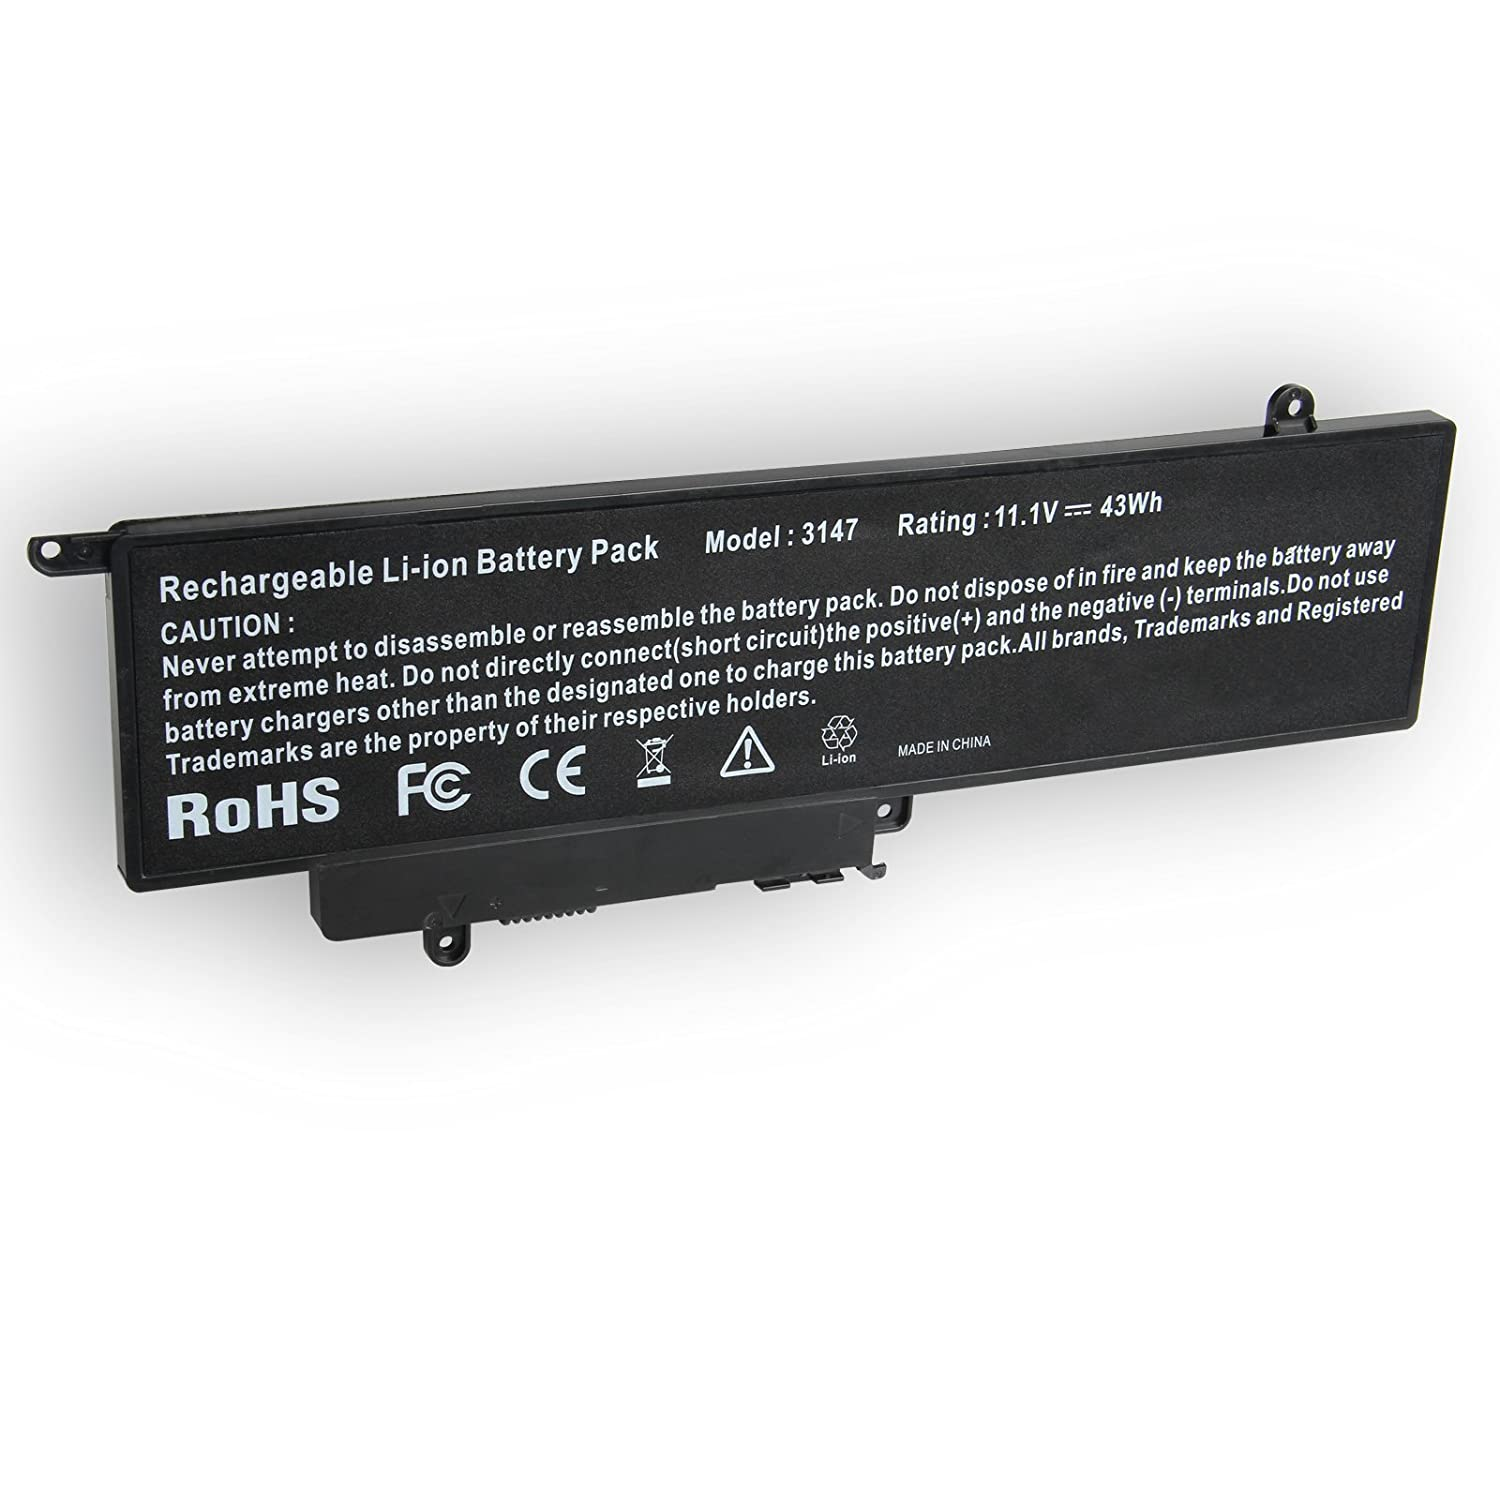 GK5KY Battery Compatible with Dell Inspiron 11 (3147/3148 / 3152) / 13  (7347/7348 / 7352) Series, fits 4K8YH 04k8yh 0WF28 P20T 92NCT 092nct  Notebook